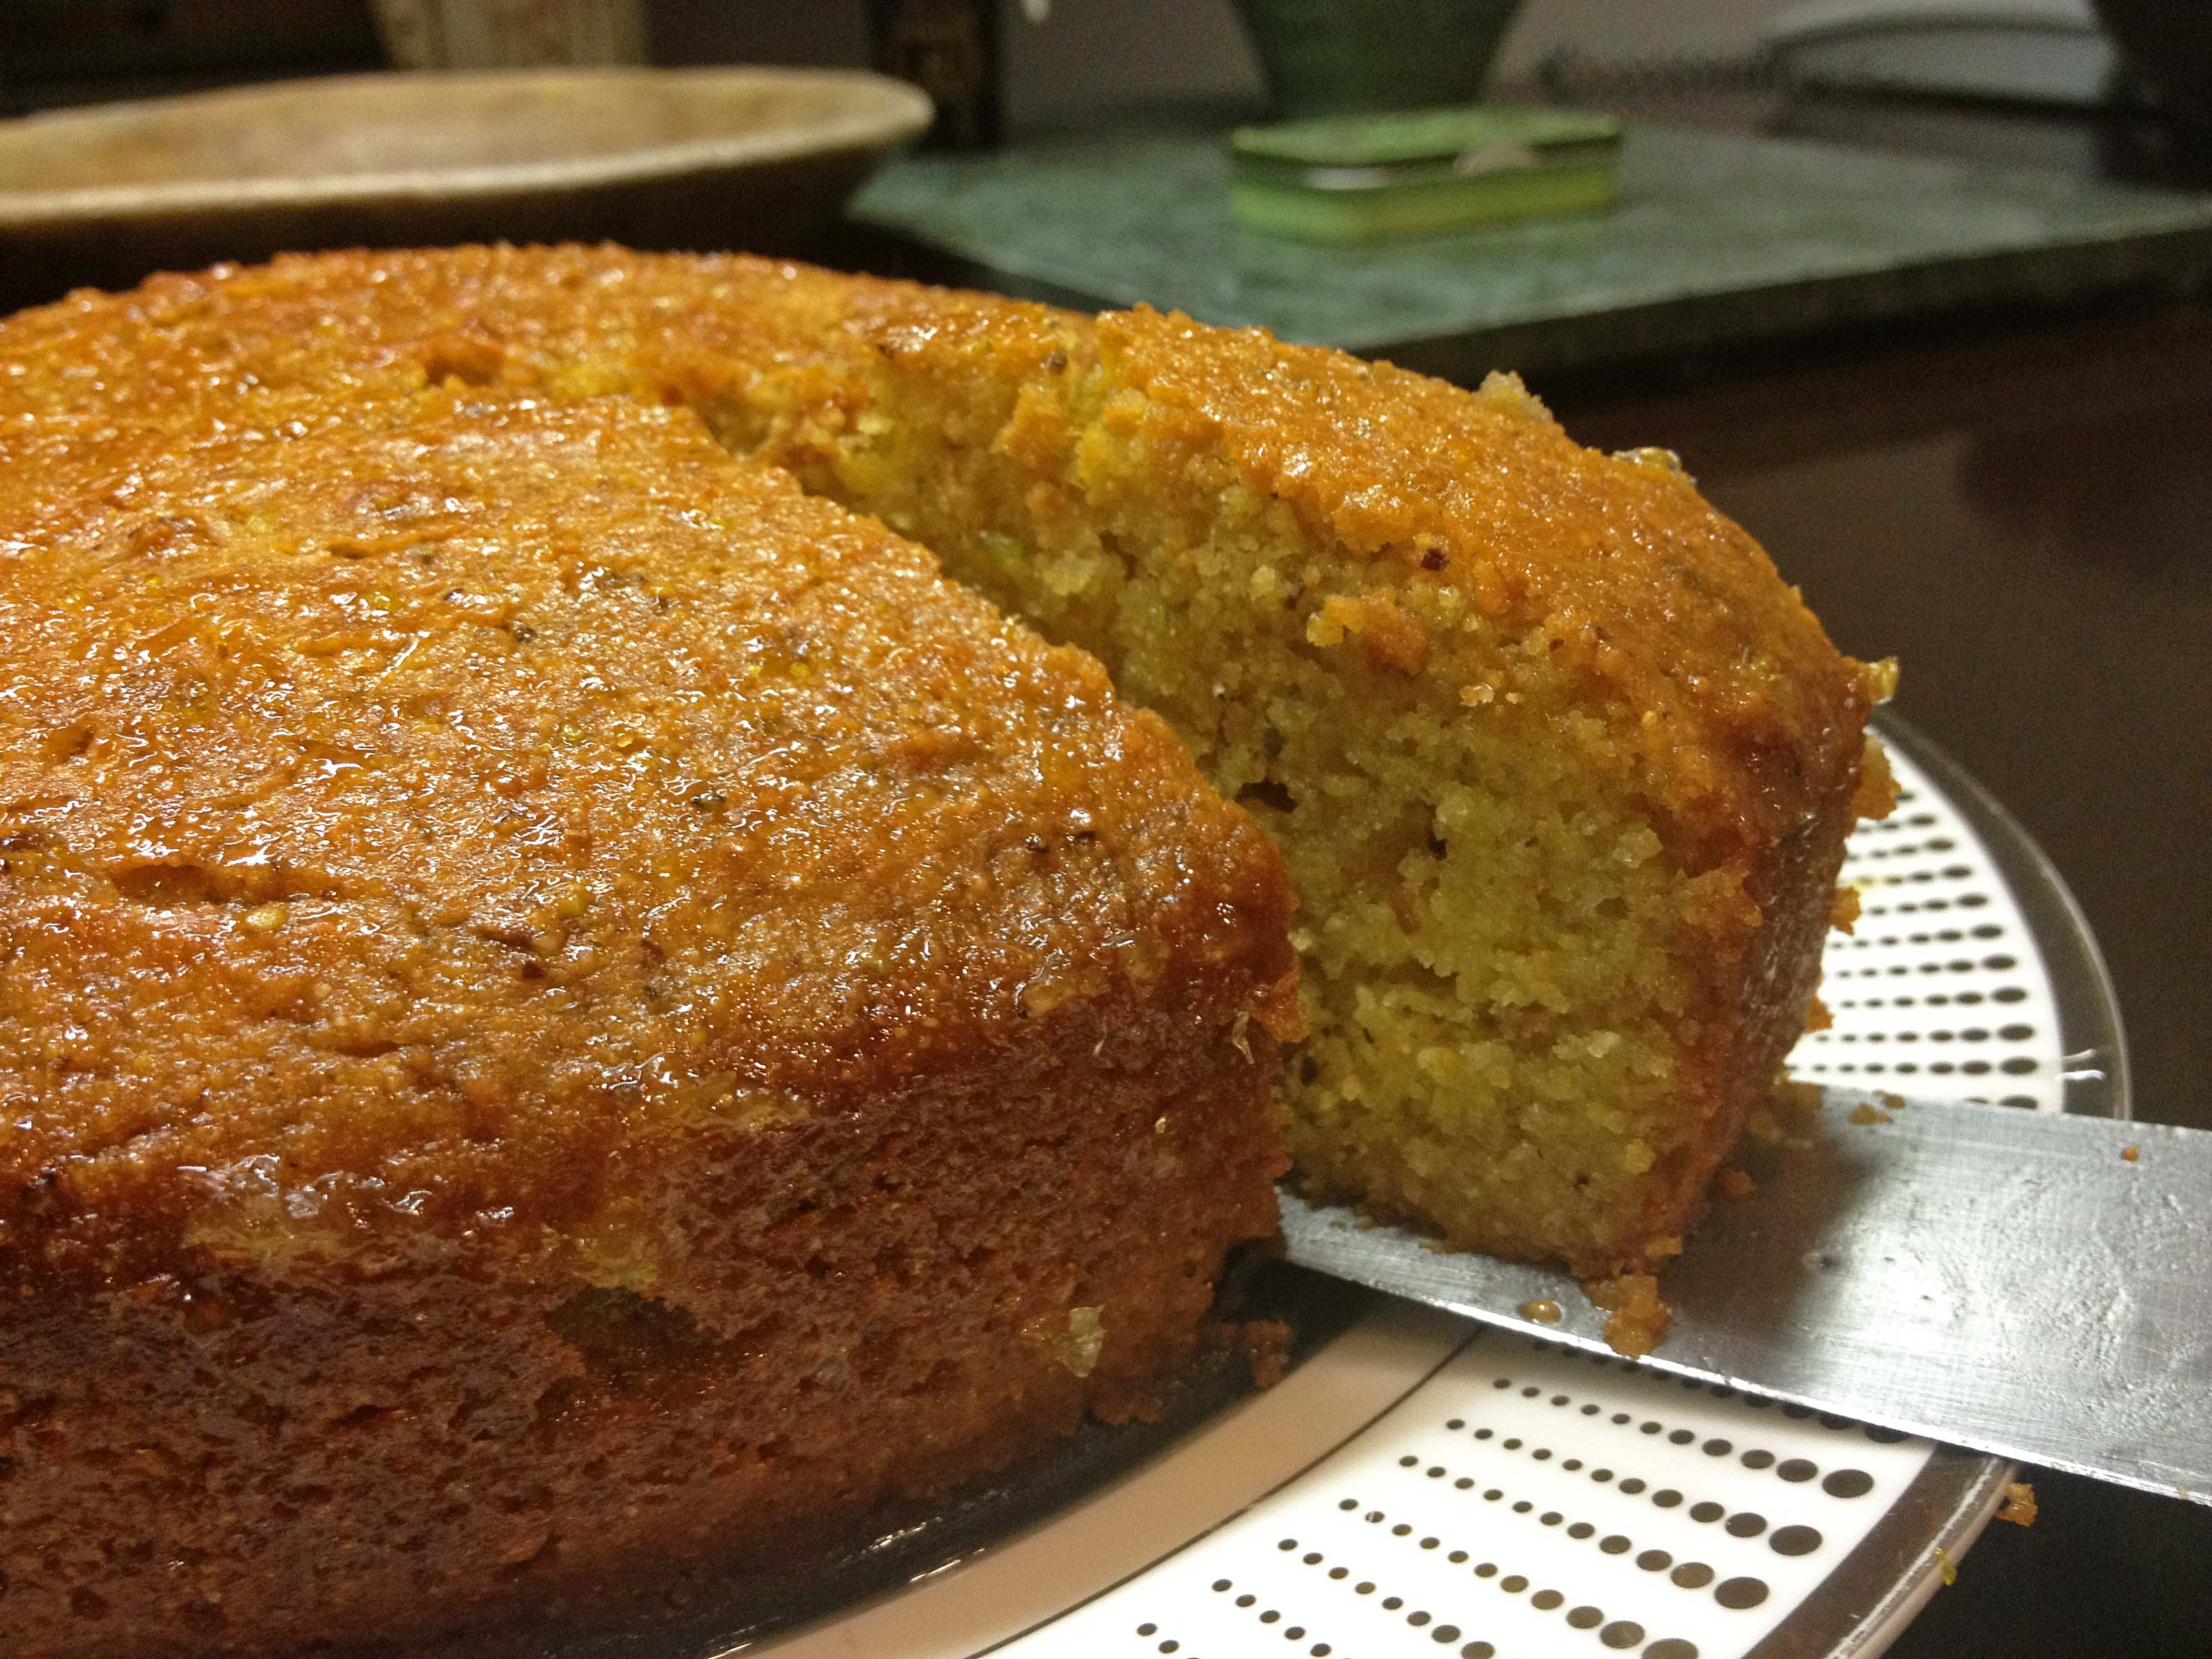 In Celebration Of The Lemon Tree I Made A Semolina And Pistachio Cake Drenched Syrup Has Sweet Citrus Tang Is Dense